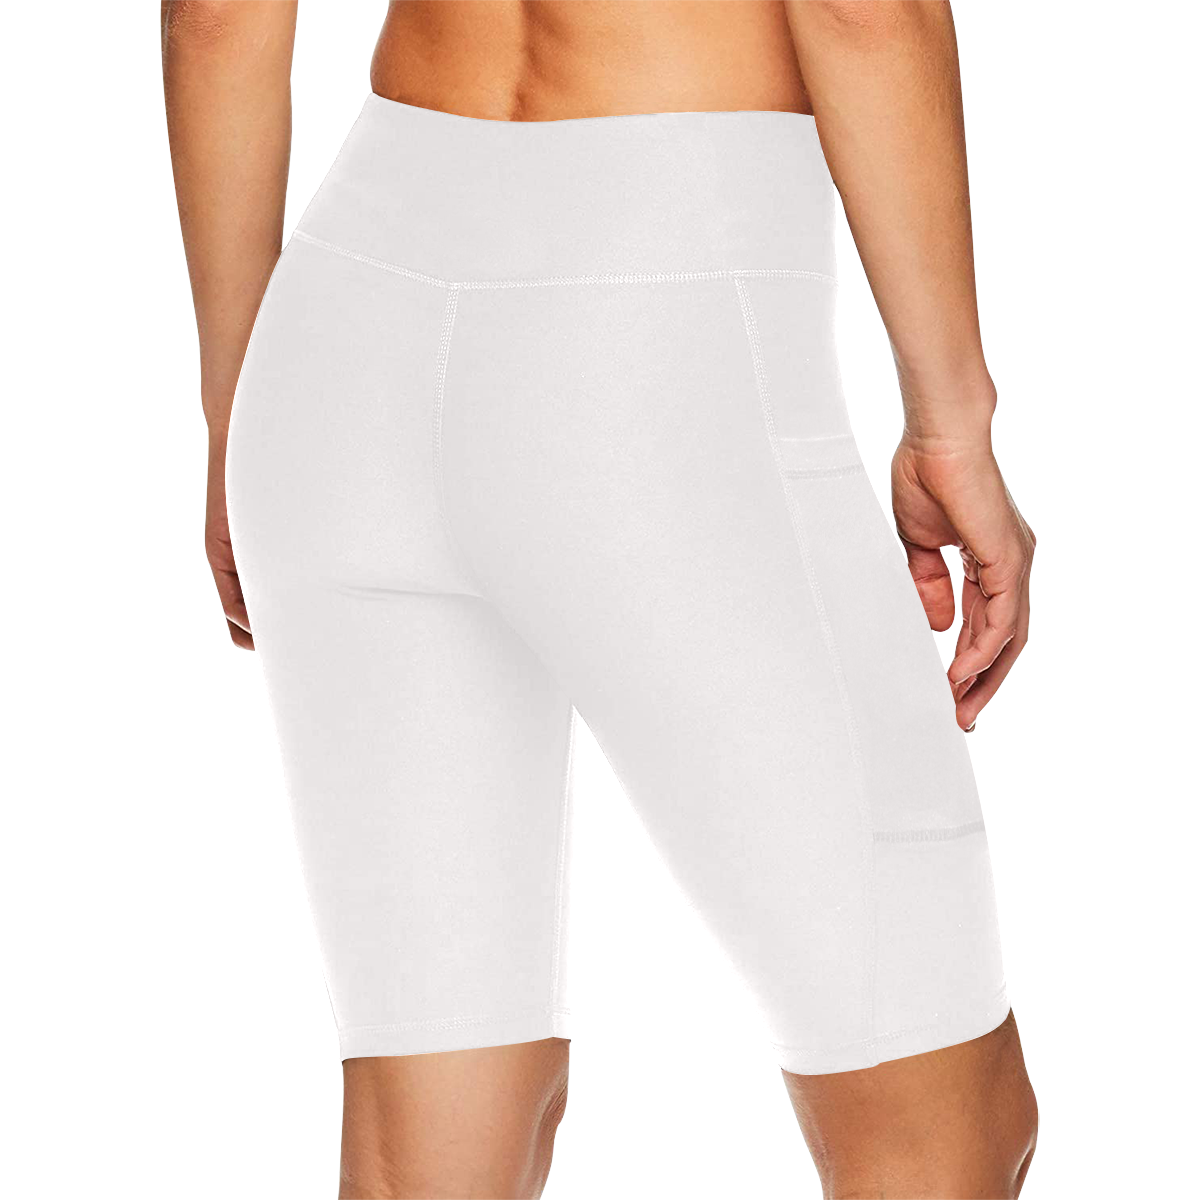 Women's Workout Half Tights (Model L42)